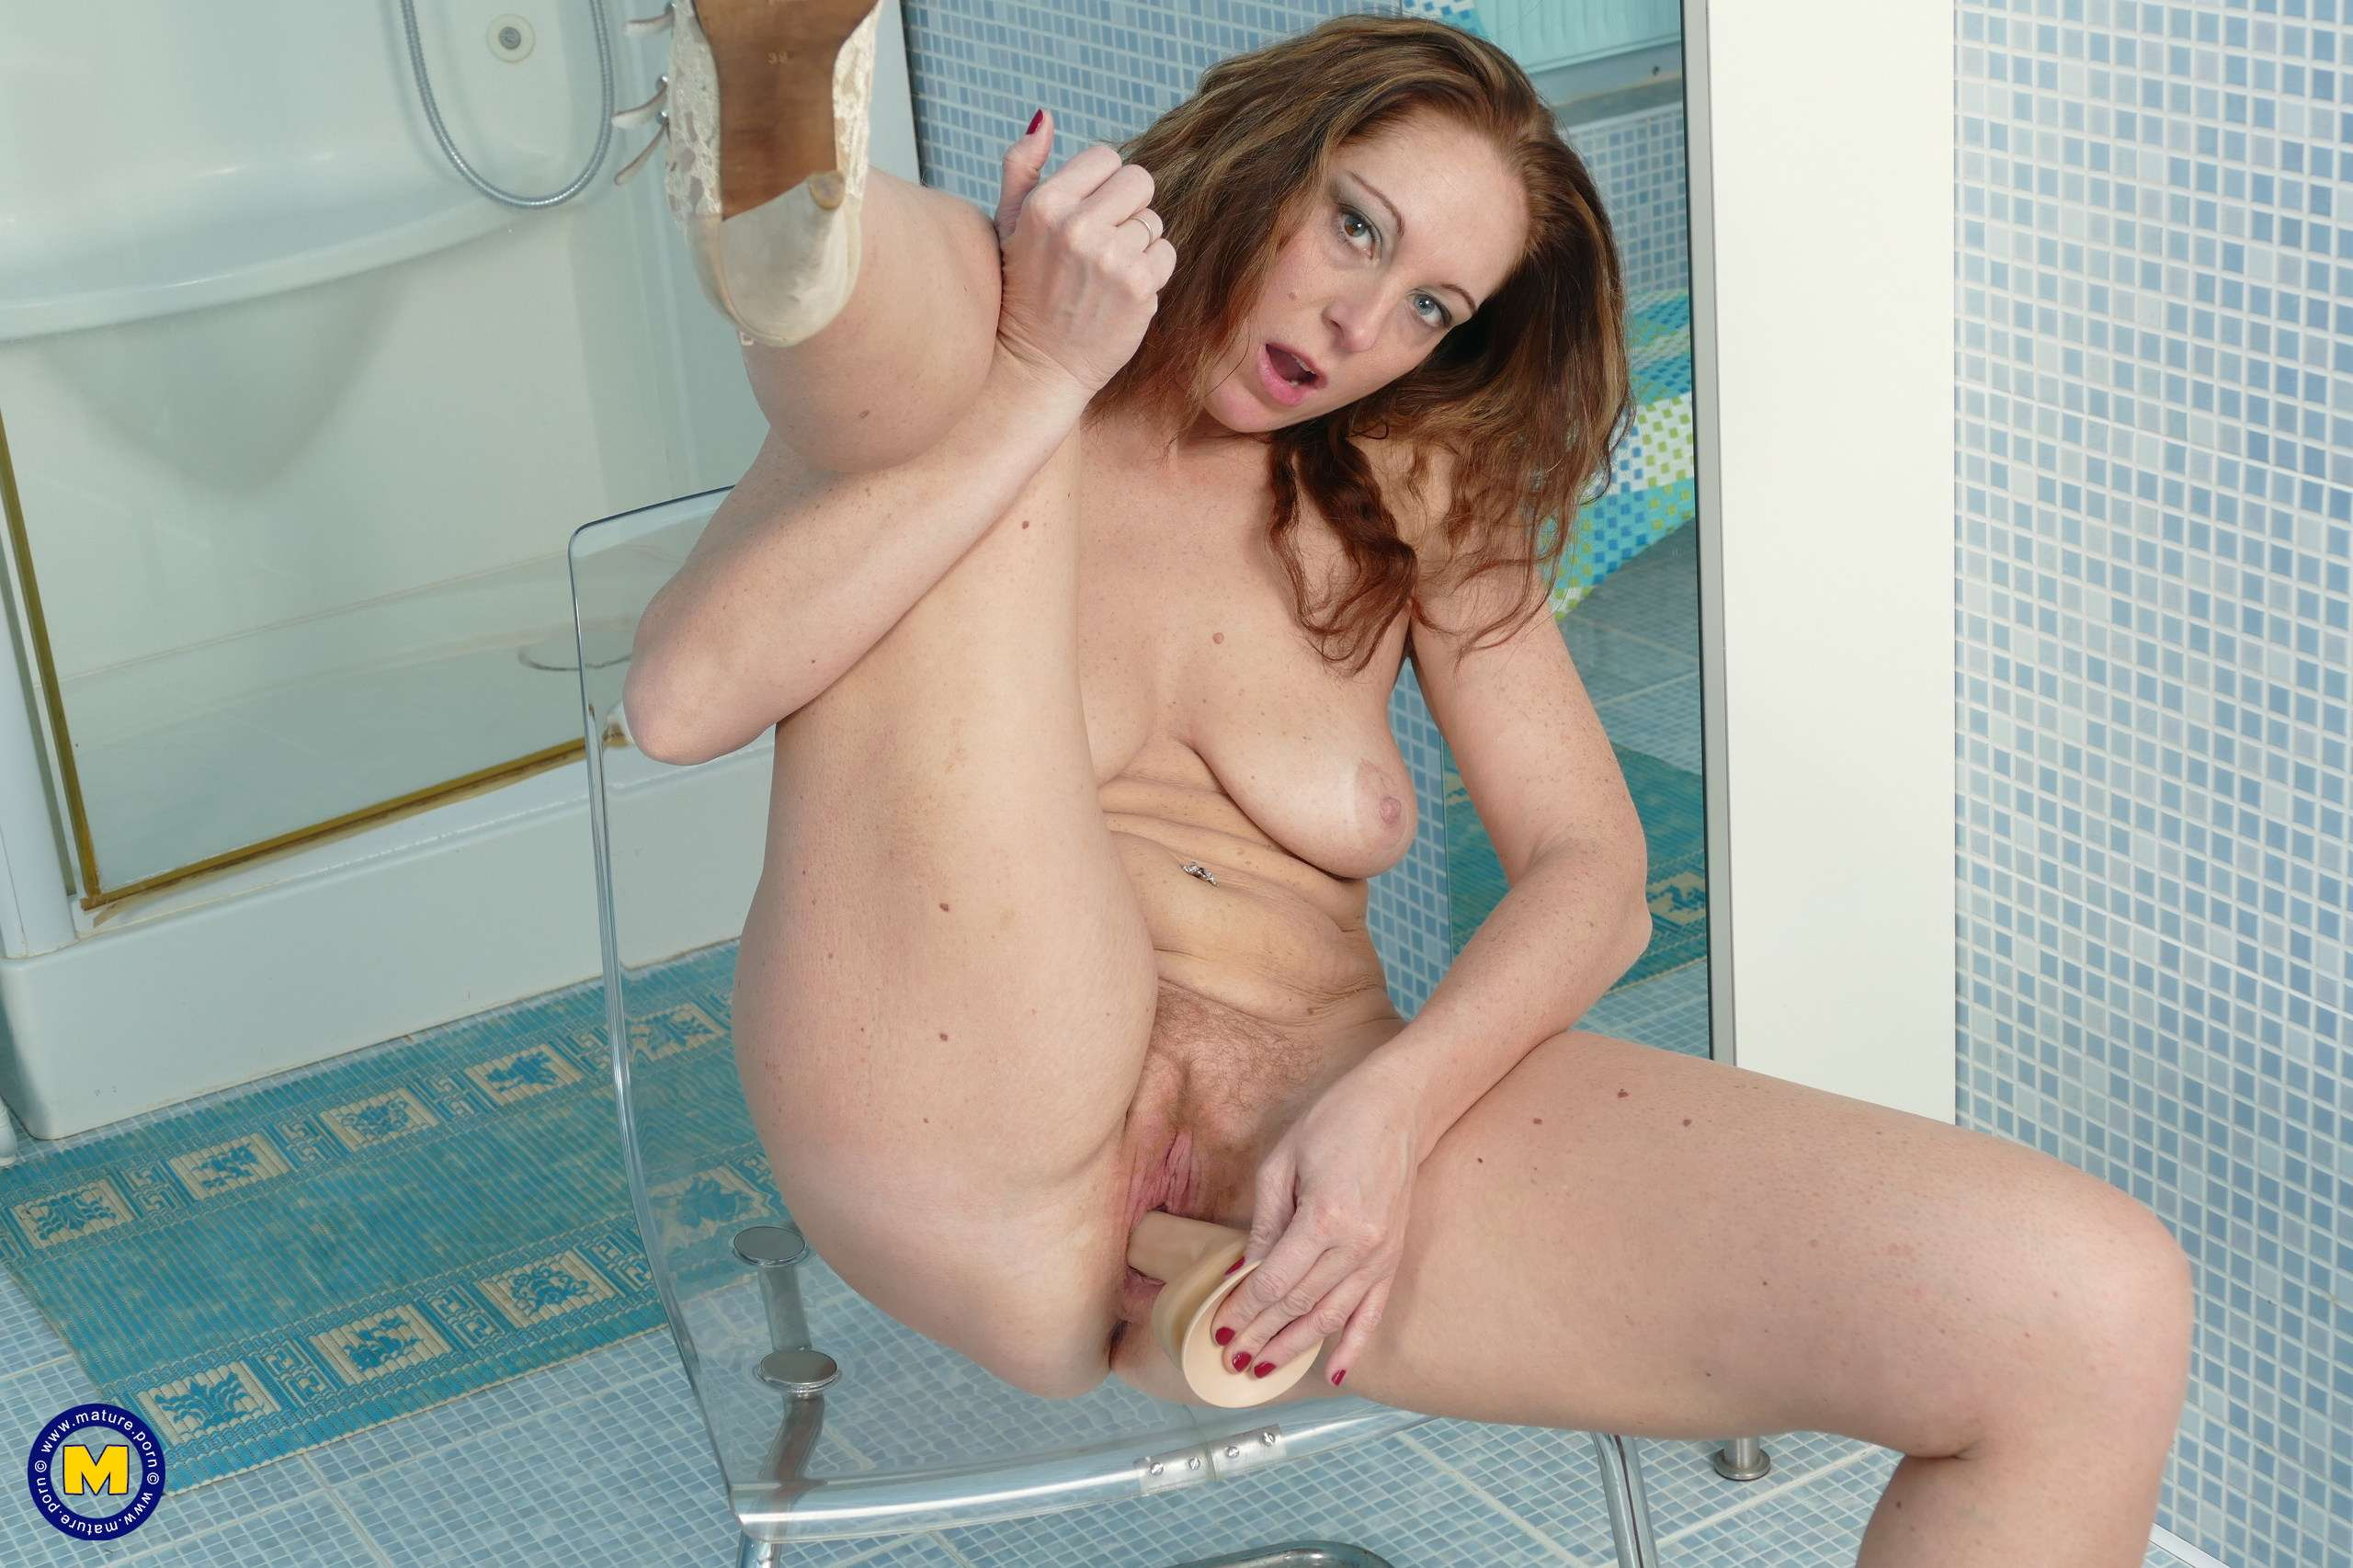 Unshaved housewife getting wet in her bathroom